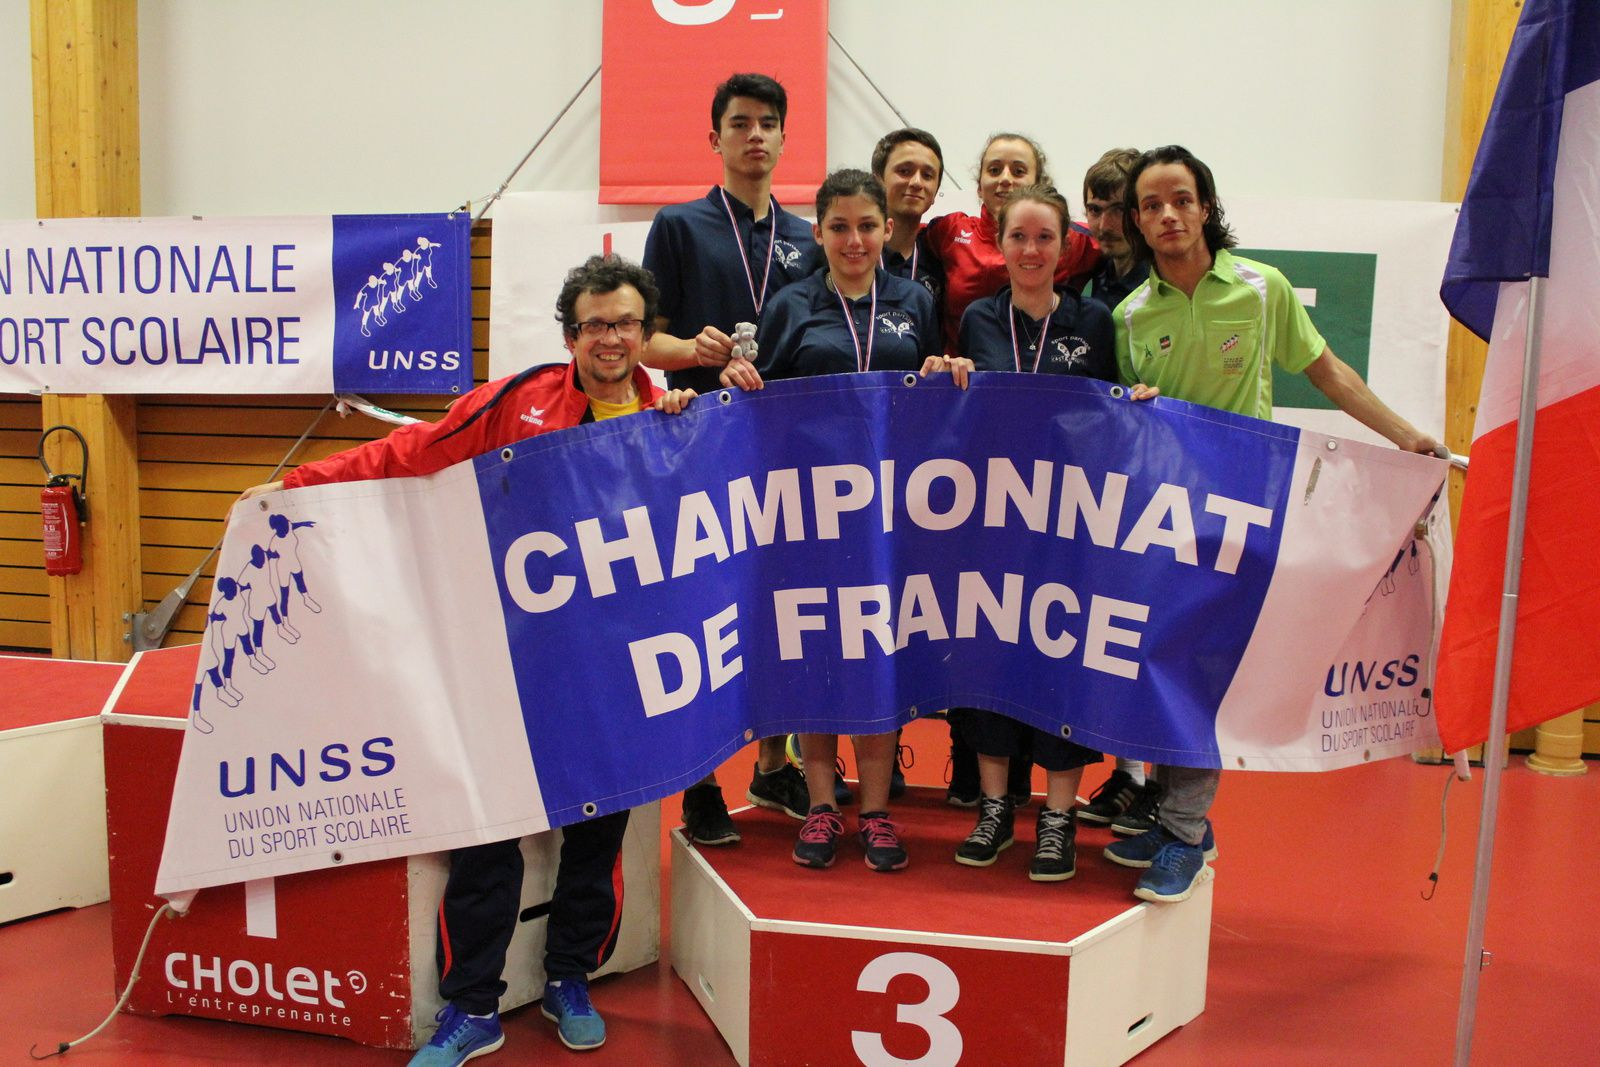 france ping cholet